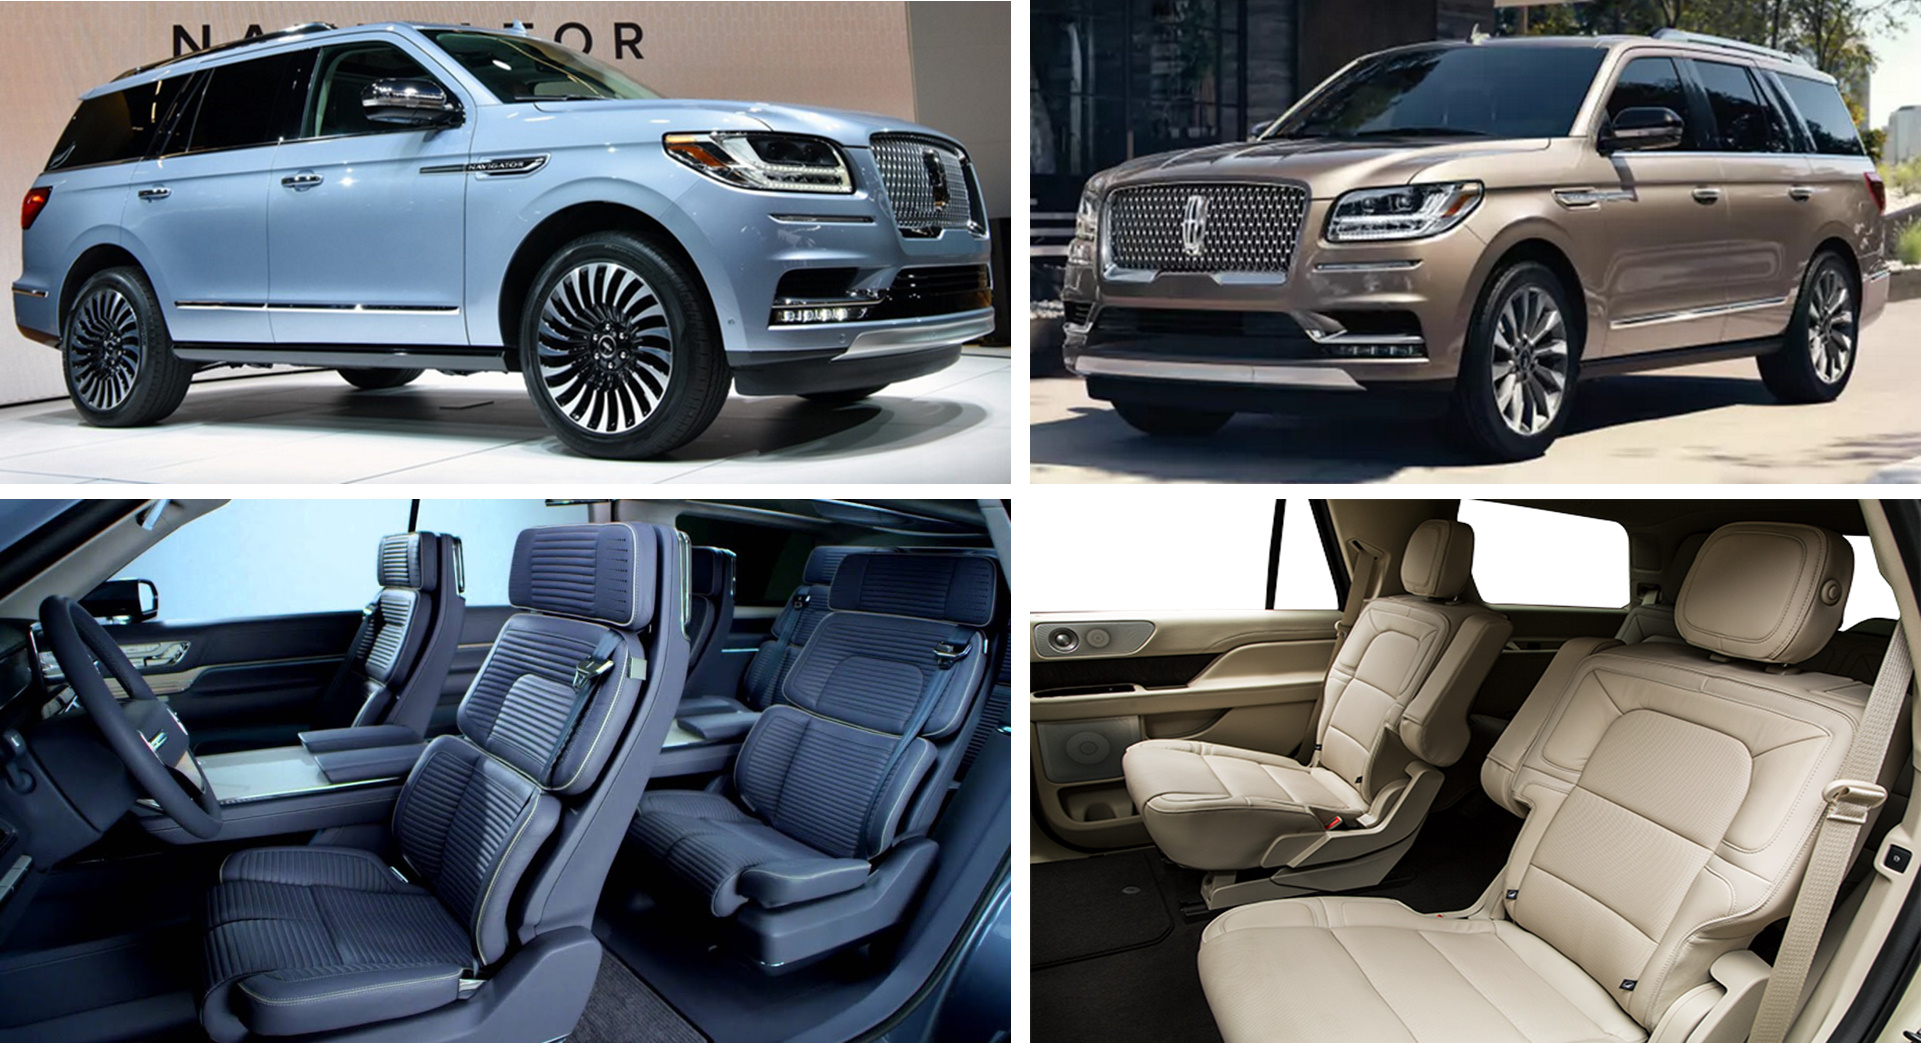 Minneapolis MN St Paul Minnesota Luxury Chauffeured Lincoln Navigator SUVs Blue-Gold-Exterior Blue-Ivory Interior Aspen Limo and Car Services